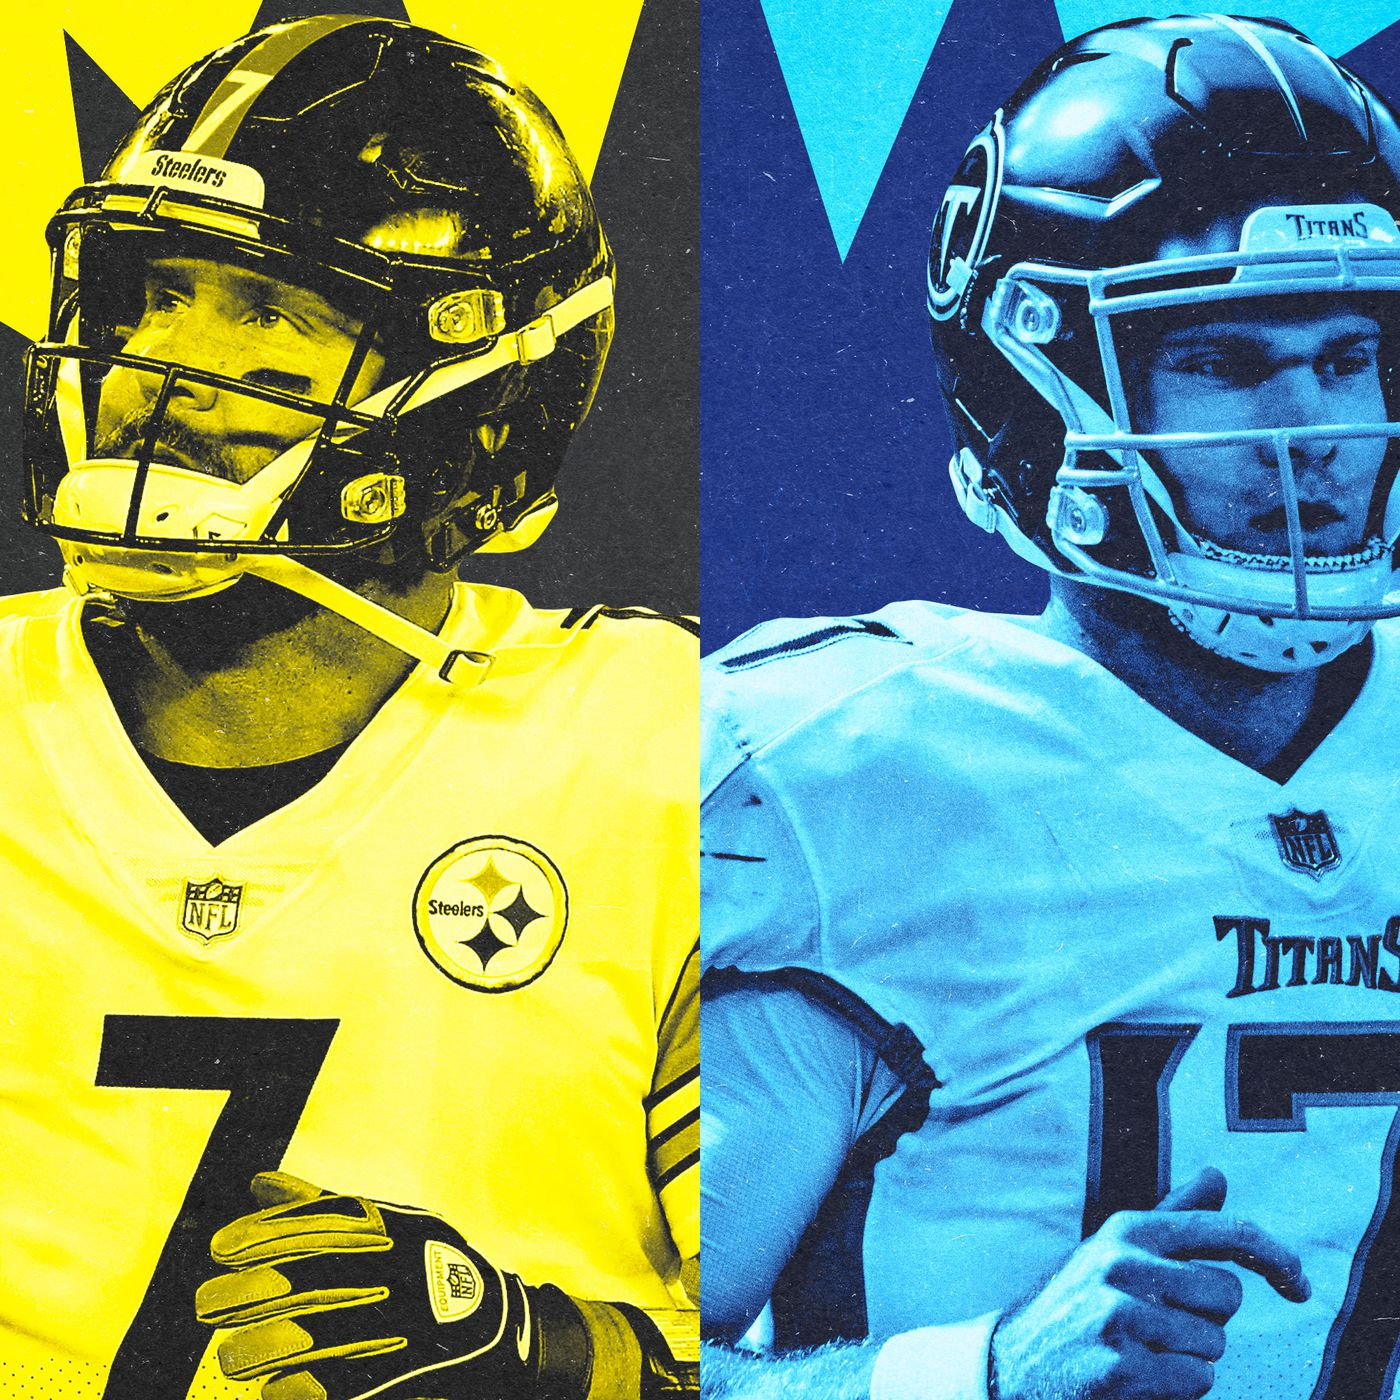 Nfl Week 7 The Steelers And Titans Get Their Undefeated Matchup The Ringer